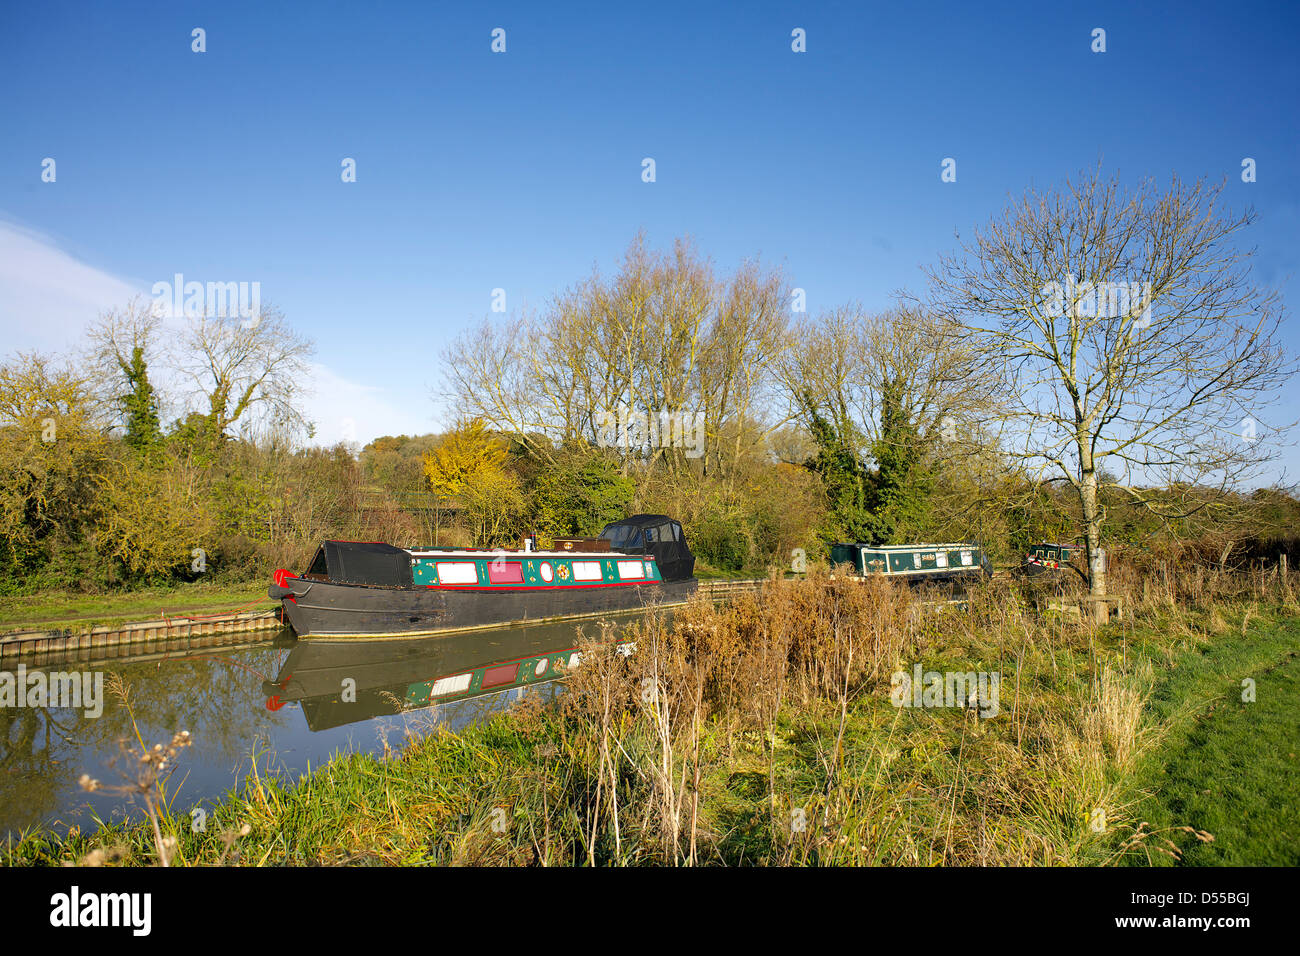 Narrowboats on the South Oxford Canal Upper Heyford Oxfordshire England UK GB Lower Heyford narrowboat boat colours - Stock Image